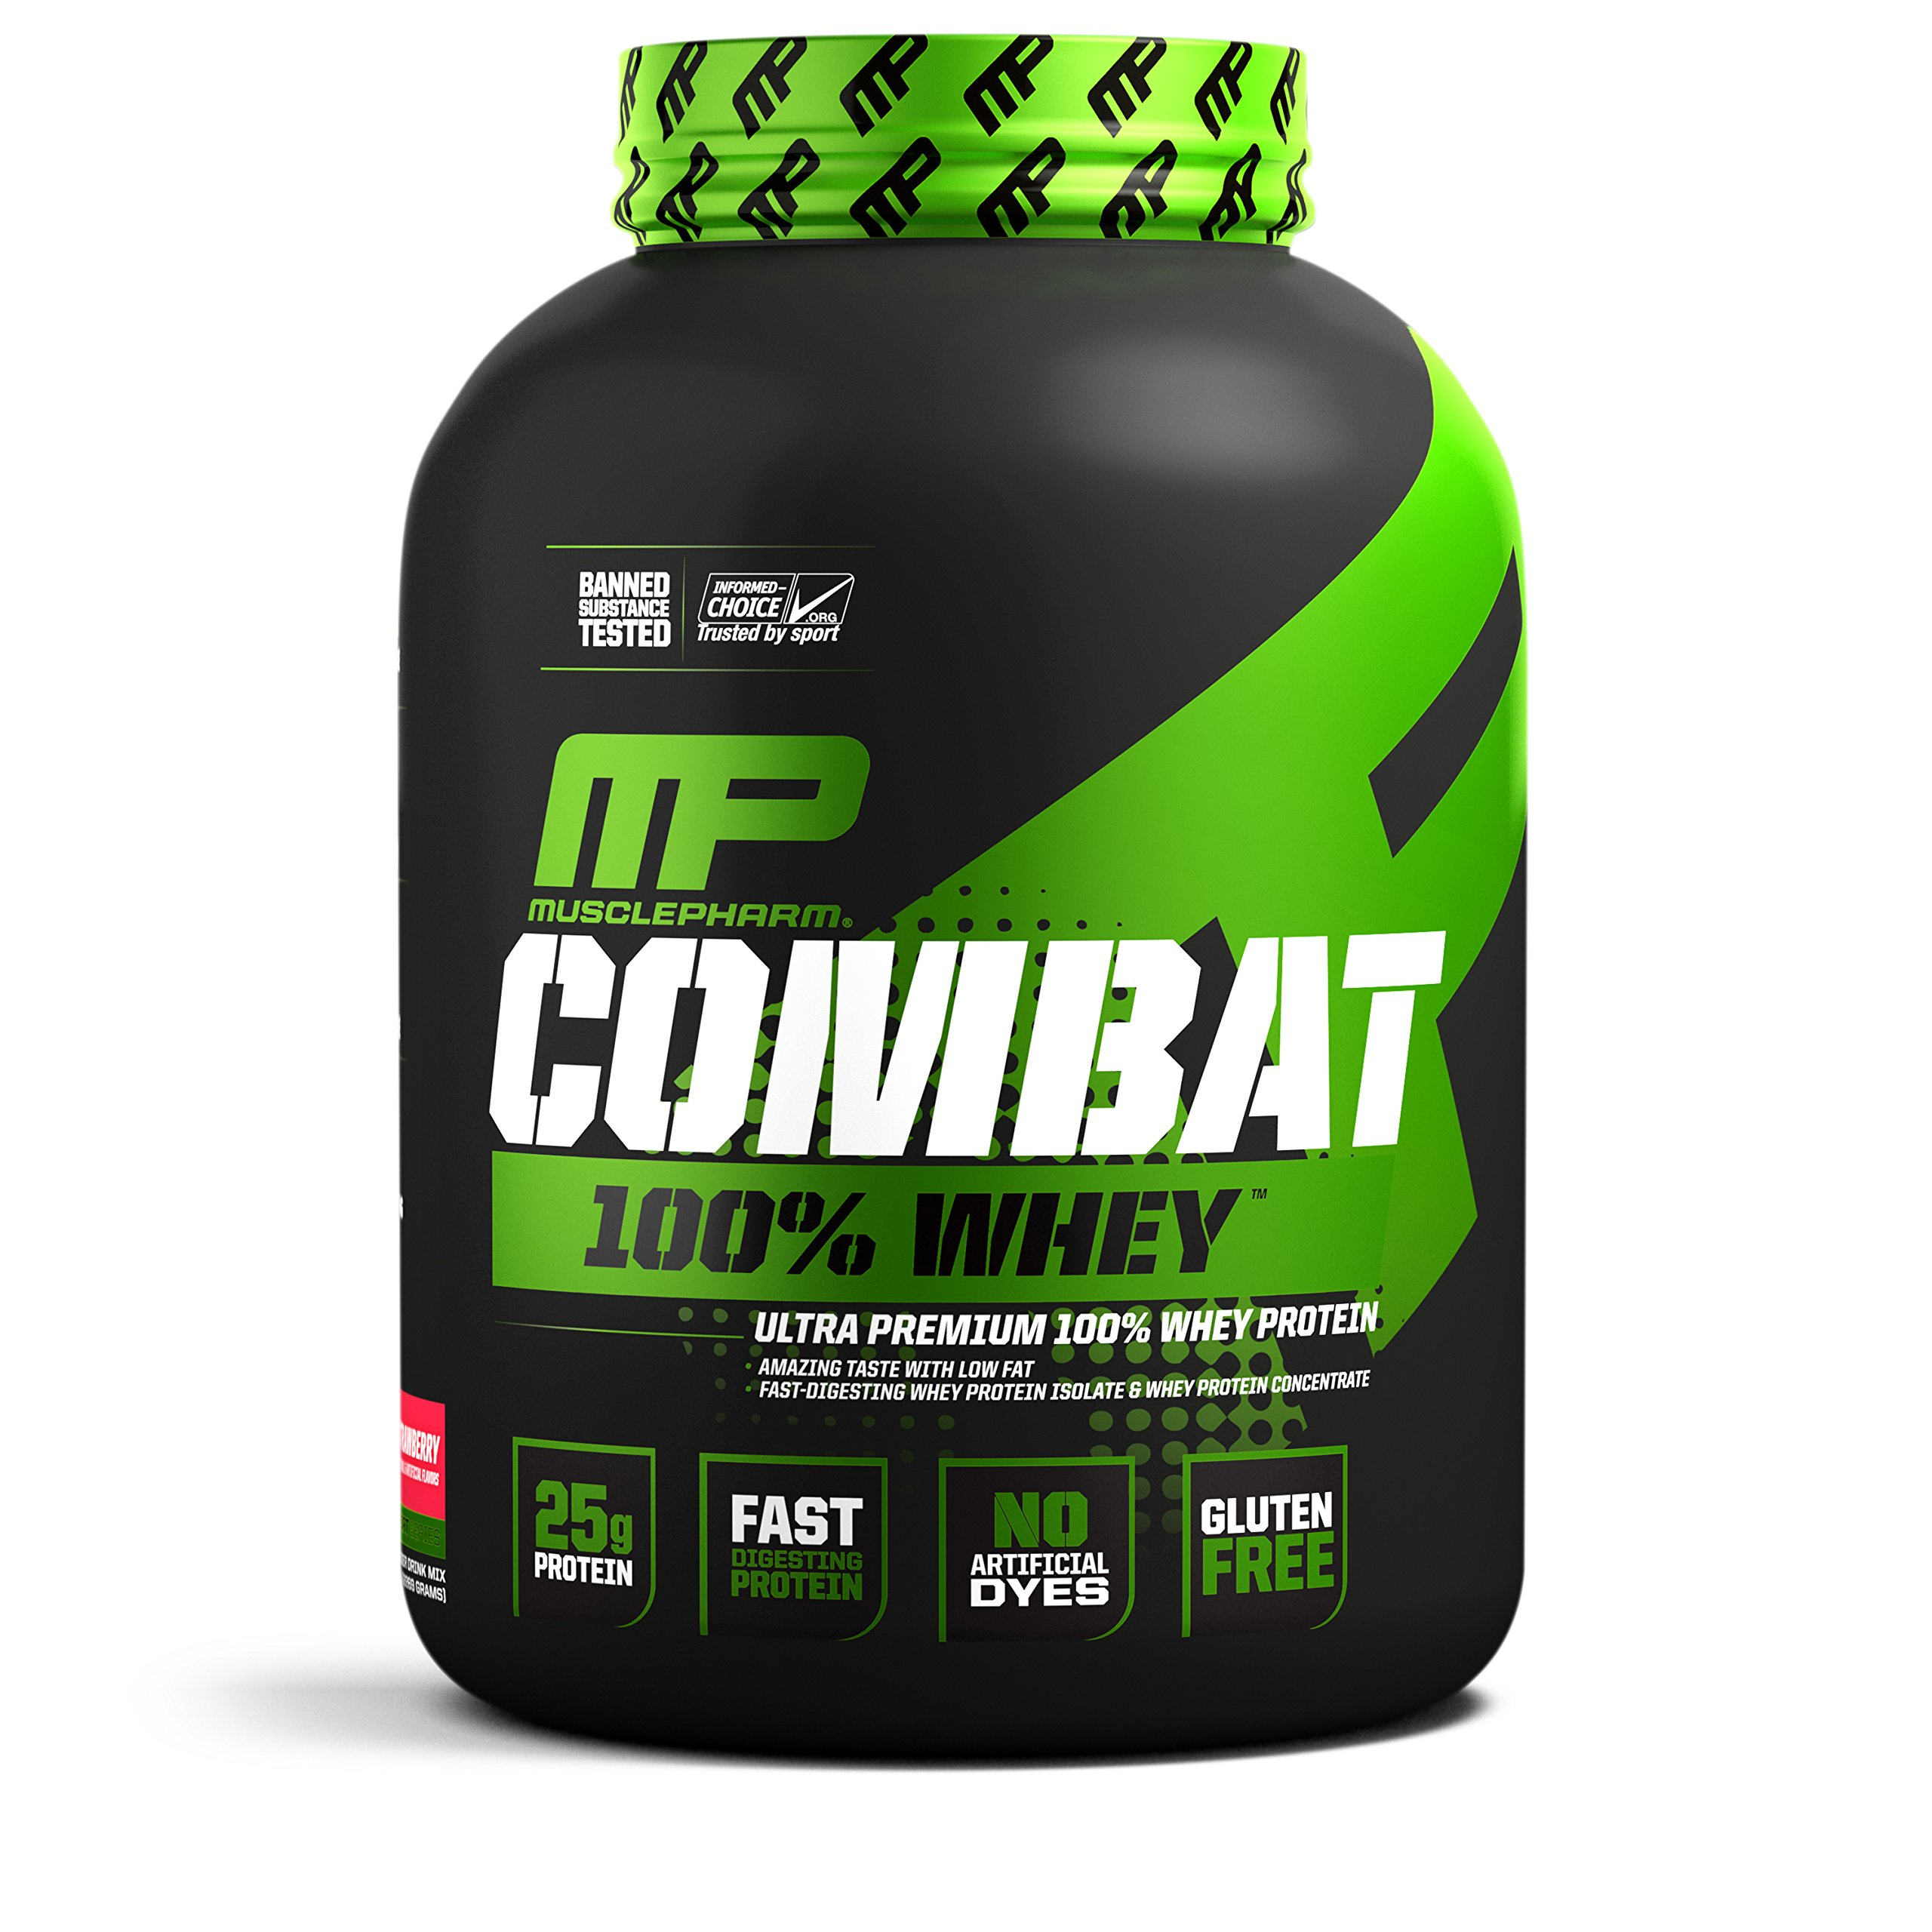 MusclePharm Combat 100% Whey, Muscle-Building Whey Protein Powder, 25 g of Ultra-Premium, Gluten-Free, Low-Fat Blend of Fast-Digesting Whey Protein, Strawberry, 5-Pound, 73 Servings by Muscle Pharm